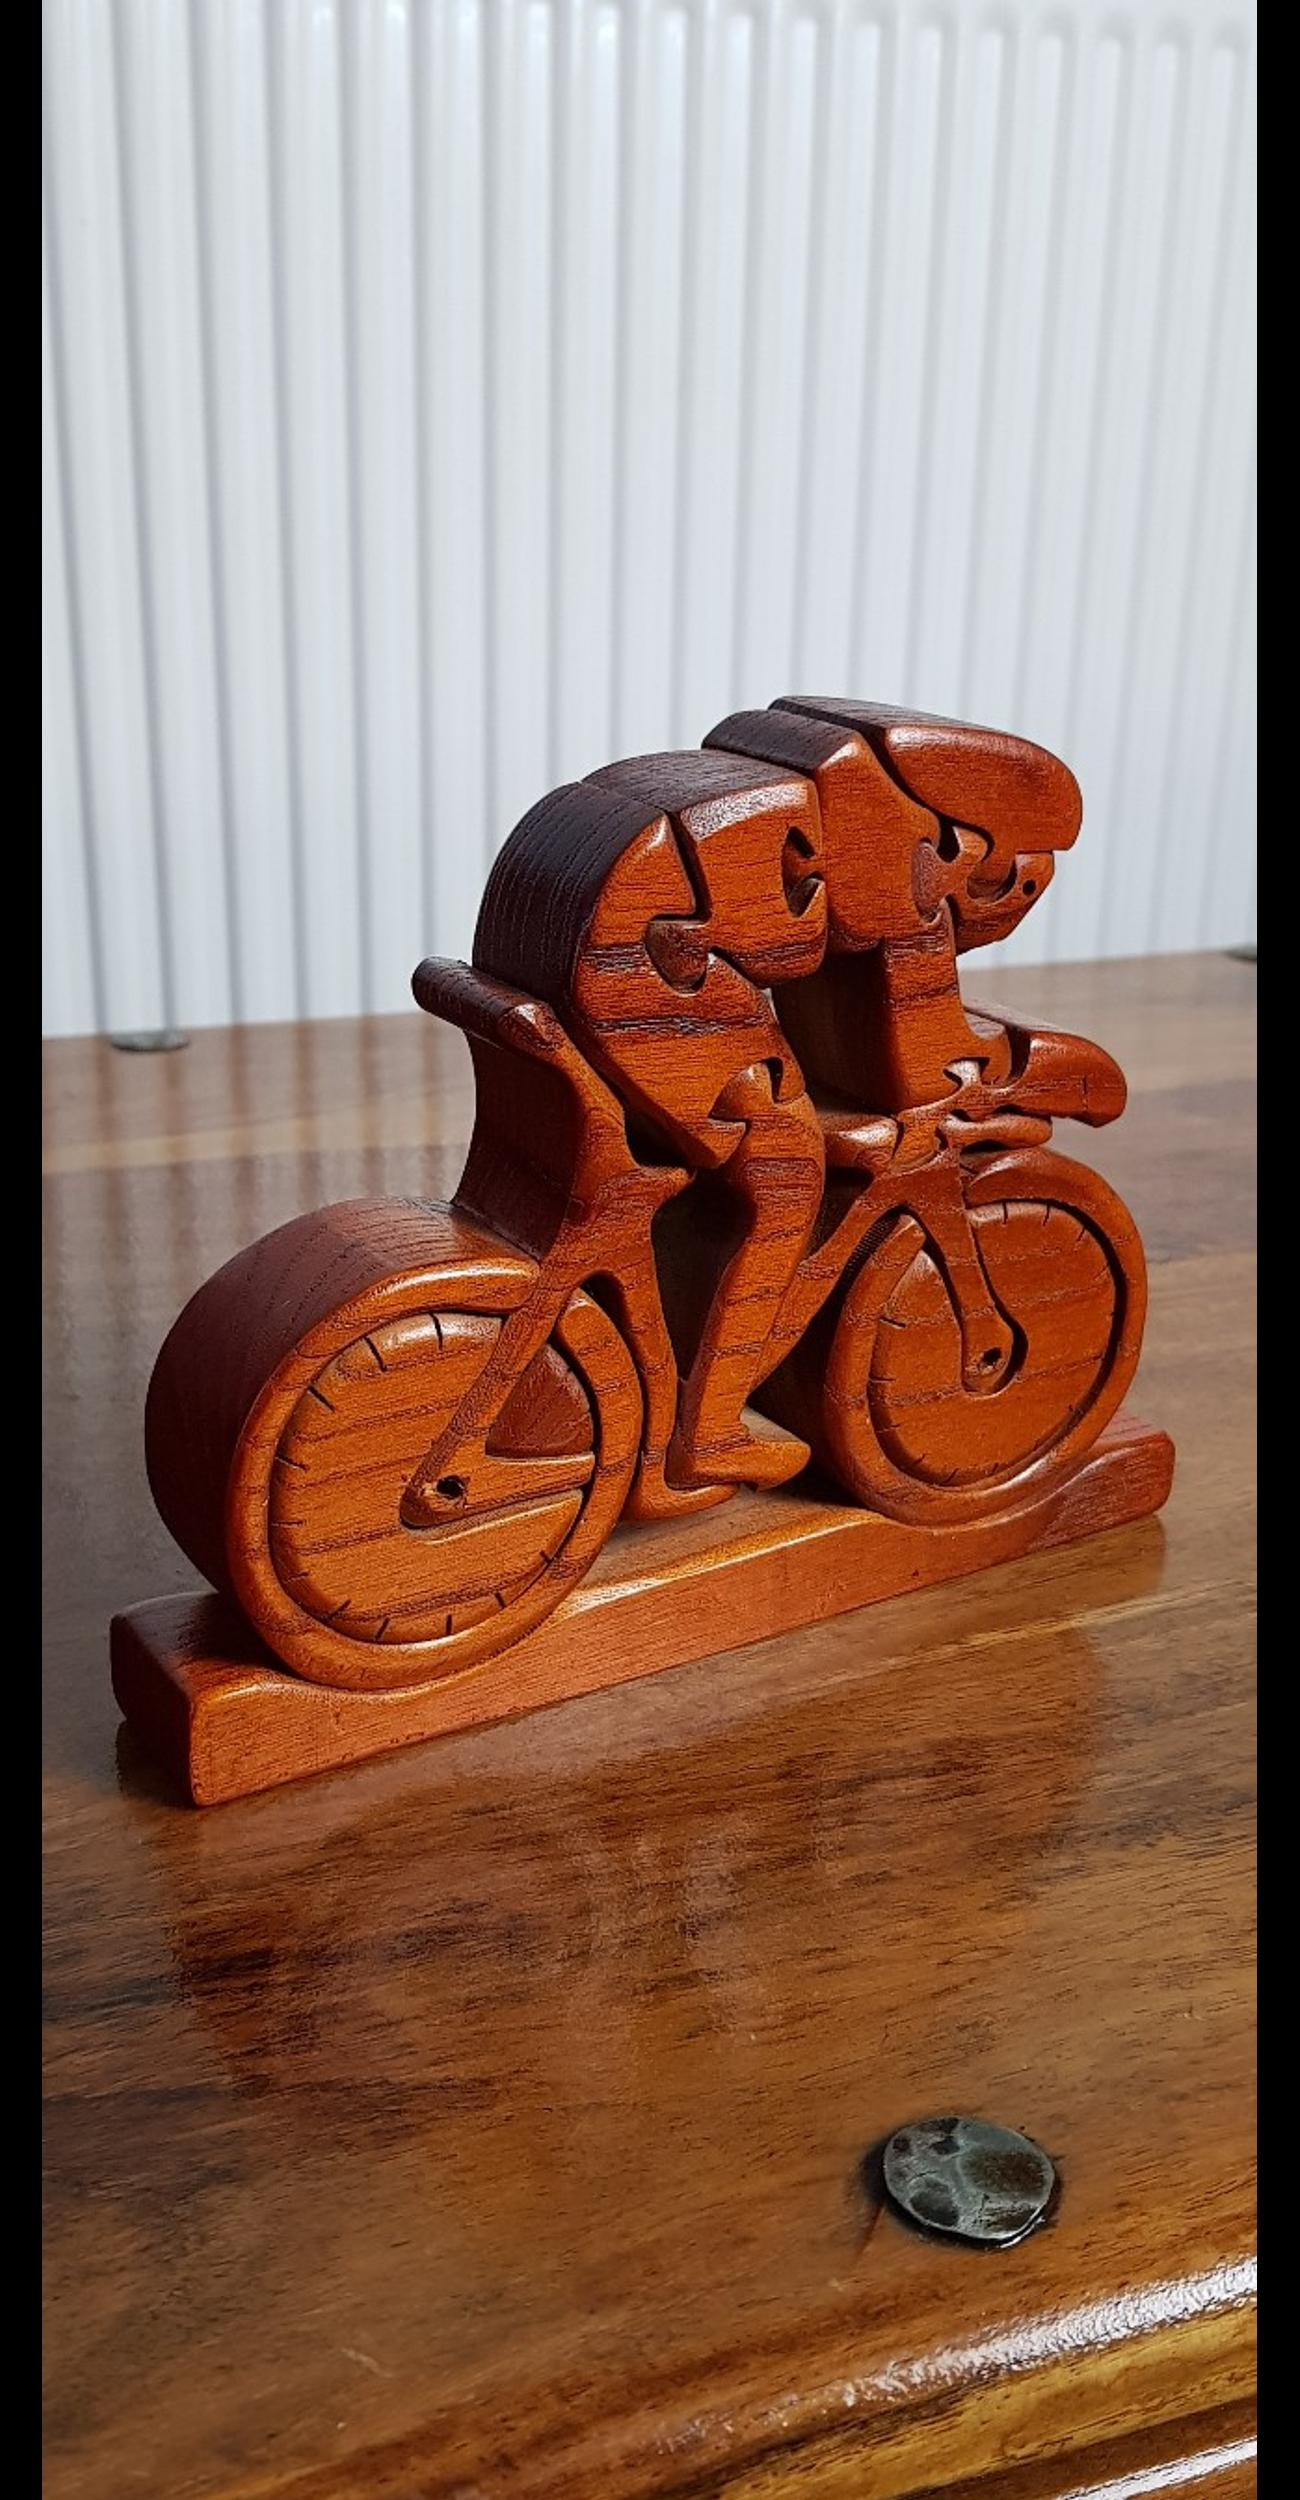 Classic Motorbike 3D Jigsaw Puzzle. Novelty Motorcycle Gifts for Men and Women & Bikers